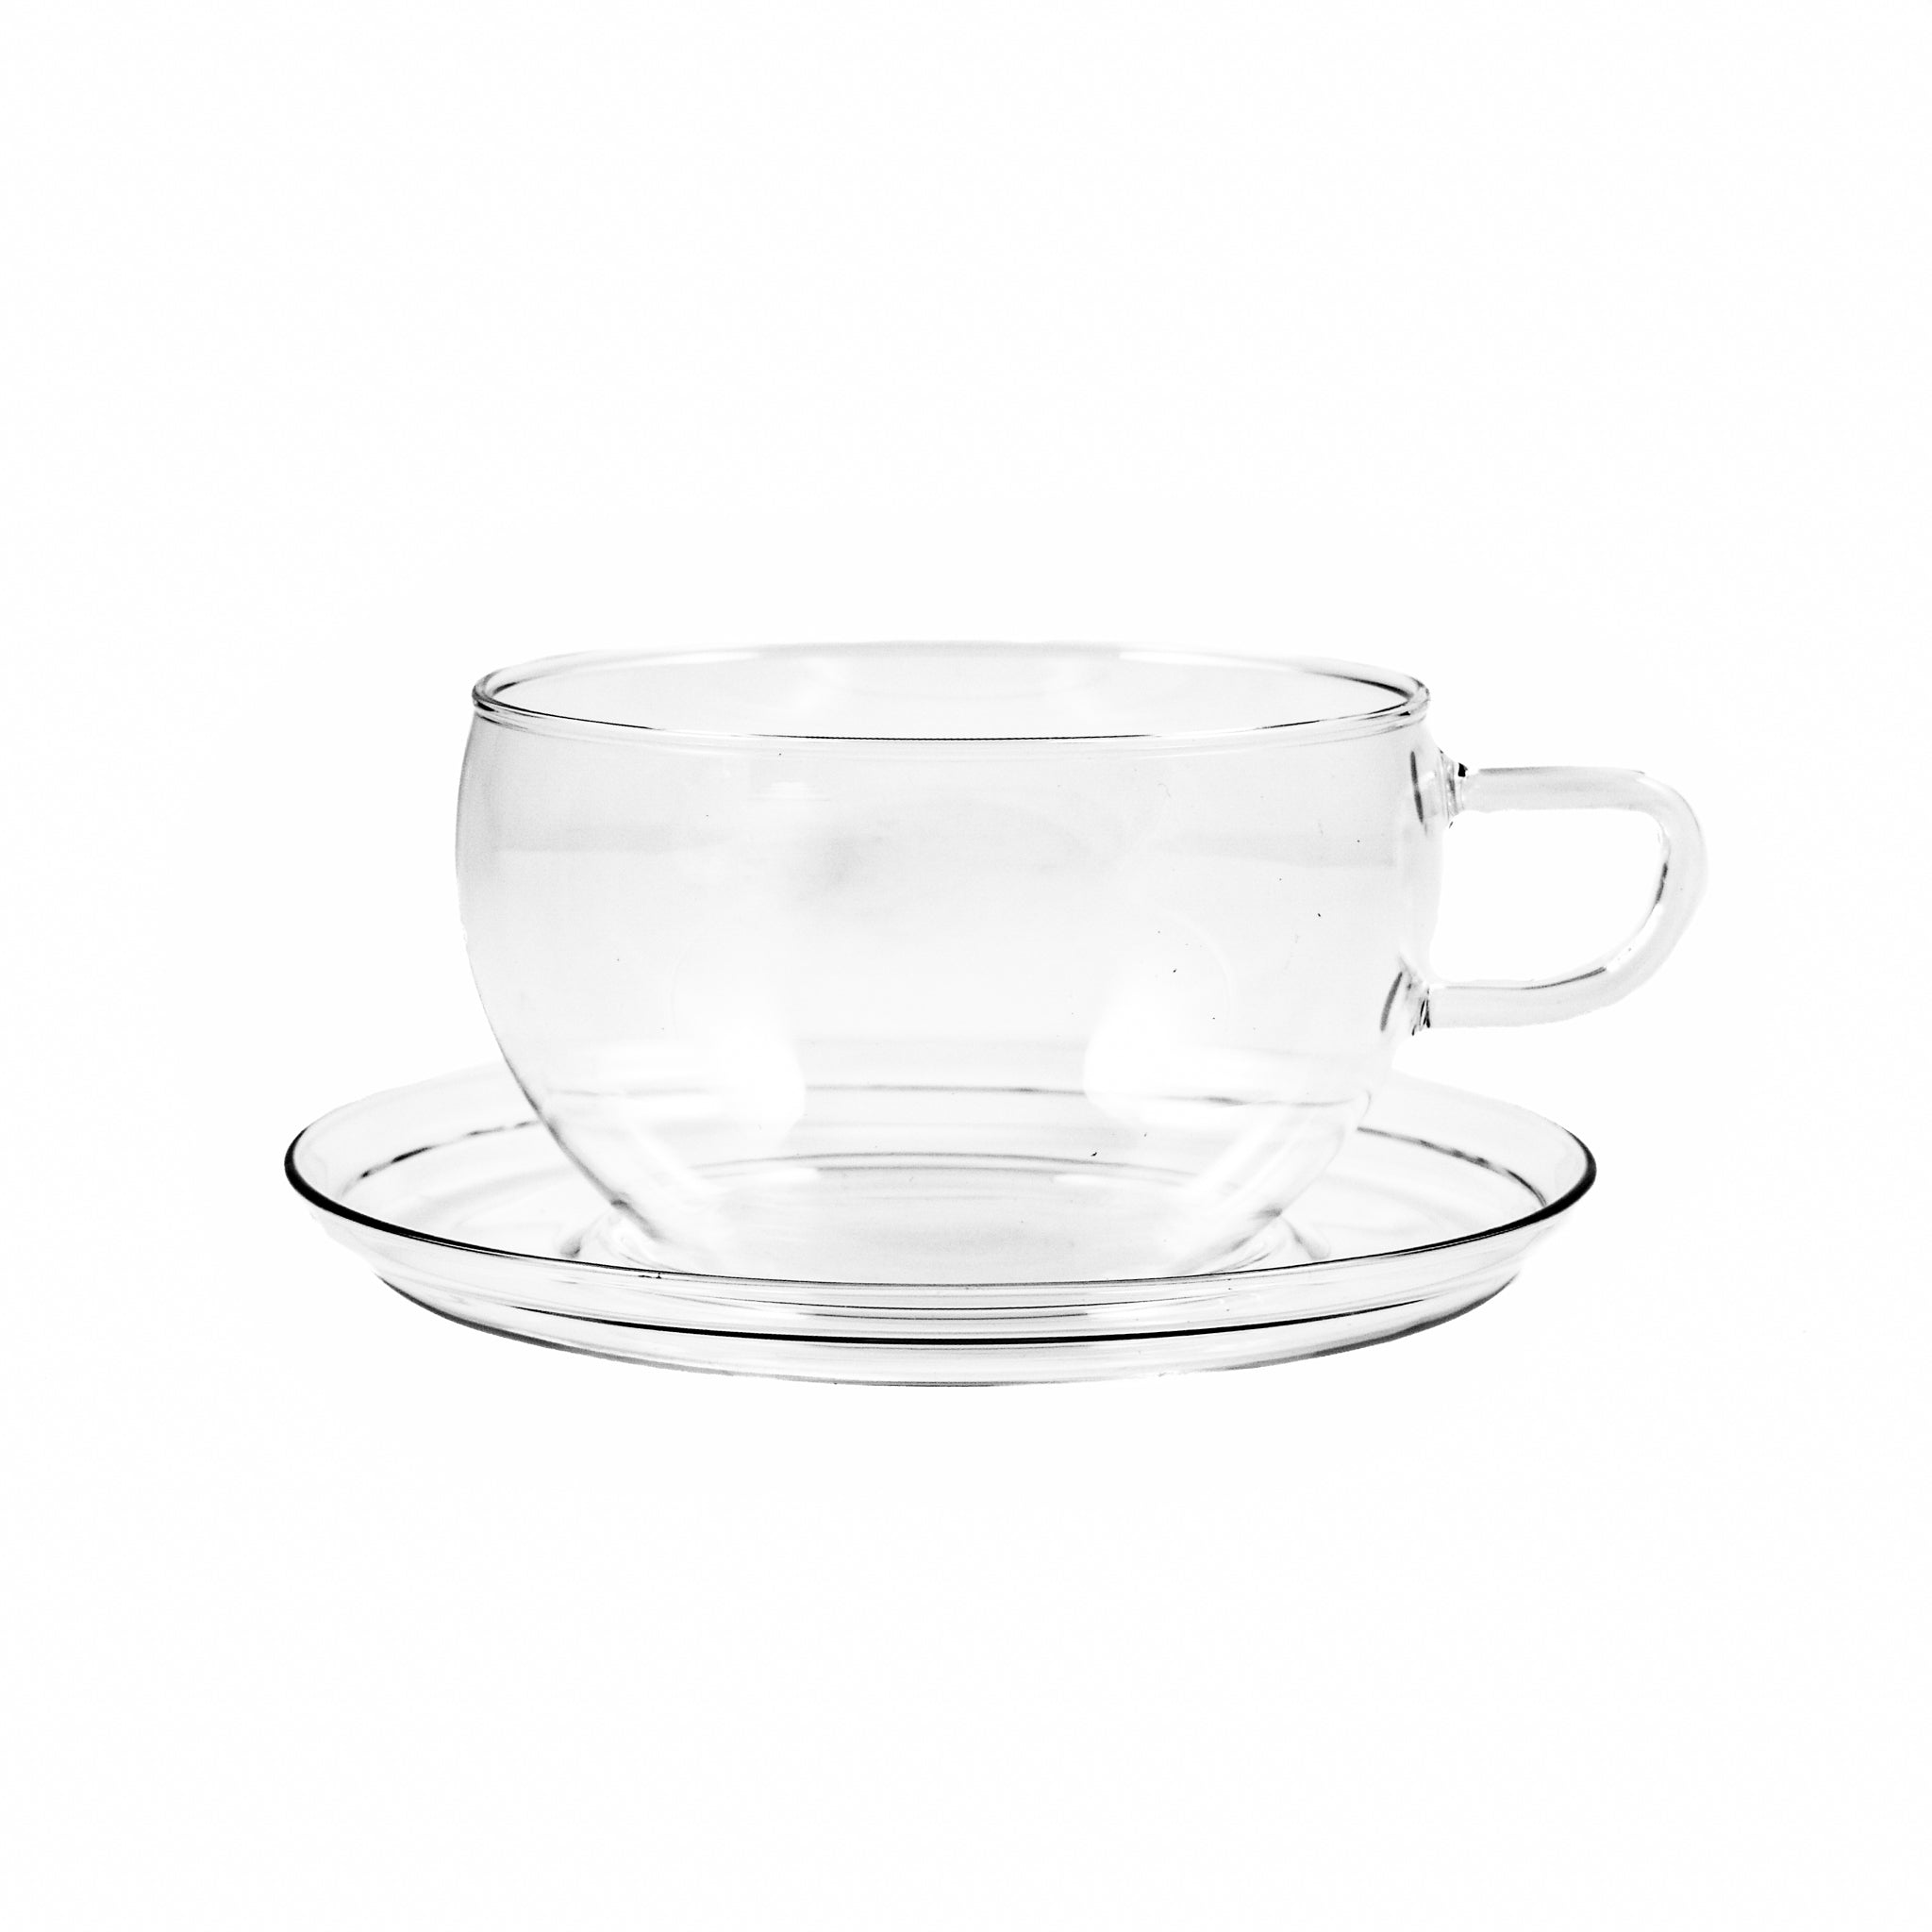 Trendglas Glass Teacup & Saucer 400ml Tableware Jugs & Glassware